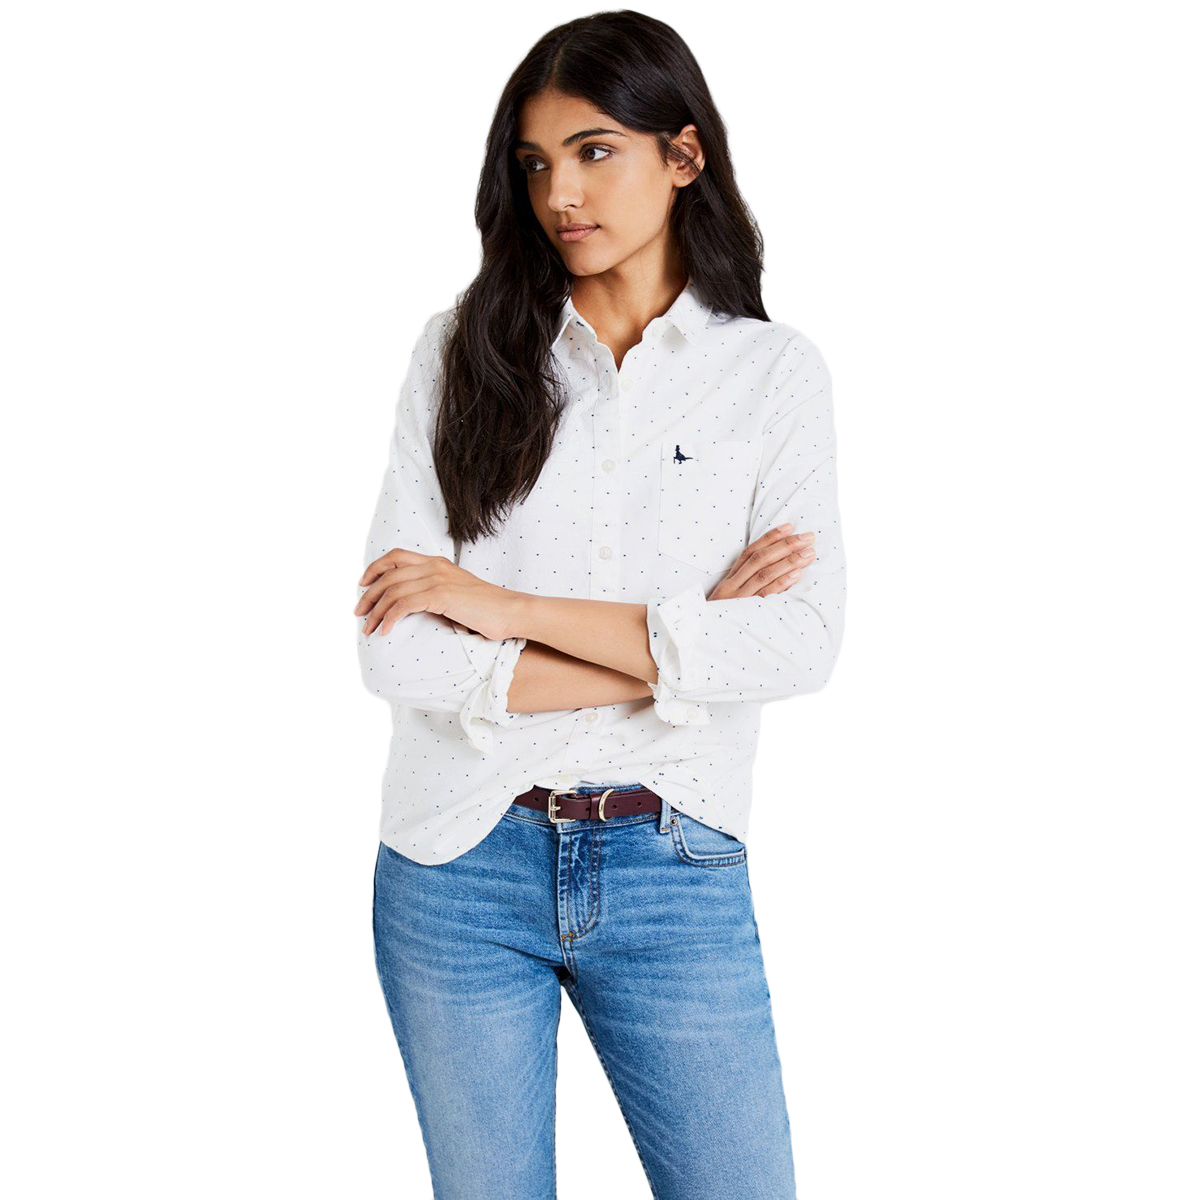 Jack Wills Women's Long-Sleeve Homefore Oxford Dobby Button Down Shirt - White, 10